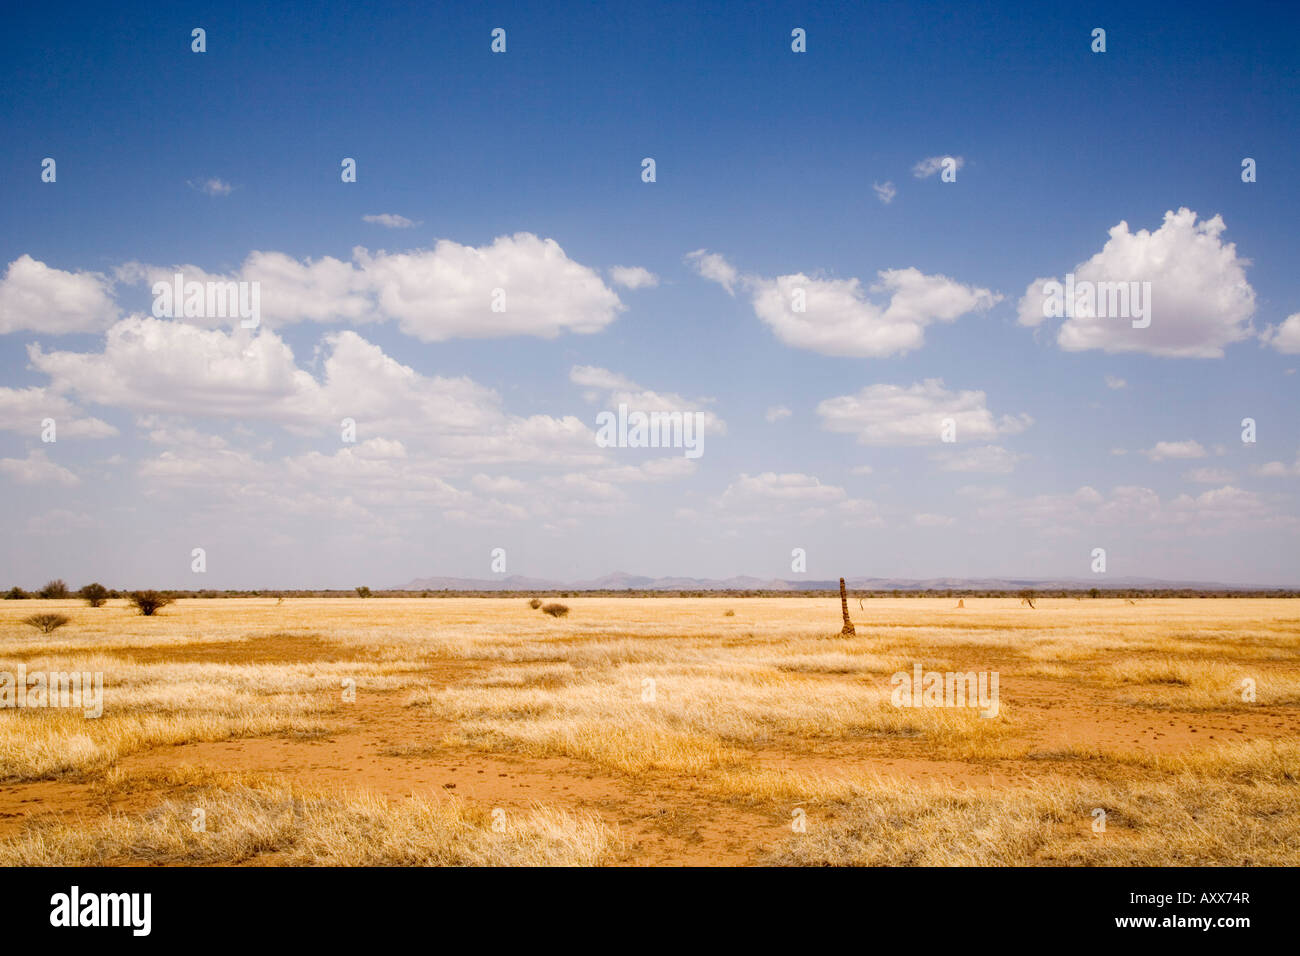 Typical landscape with termite mounds, Lower Omo Valley, Ethiopia, Africa - Stock Image